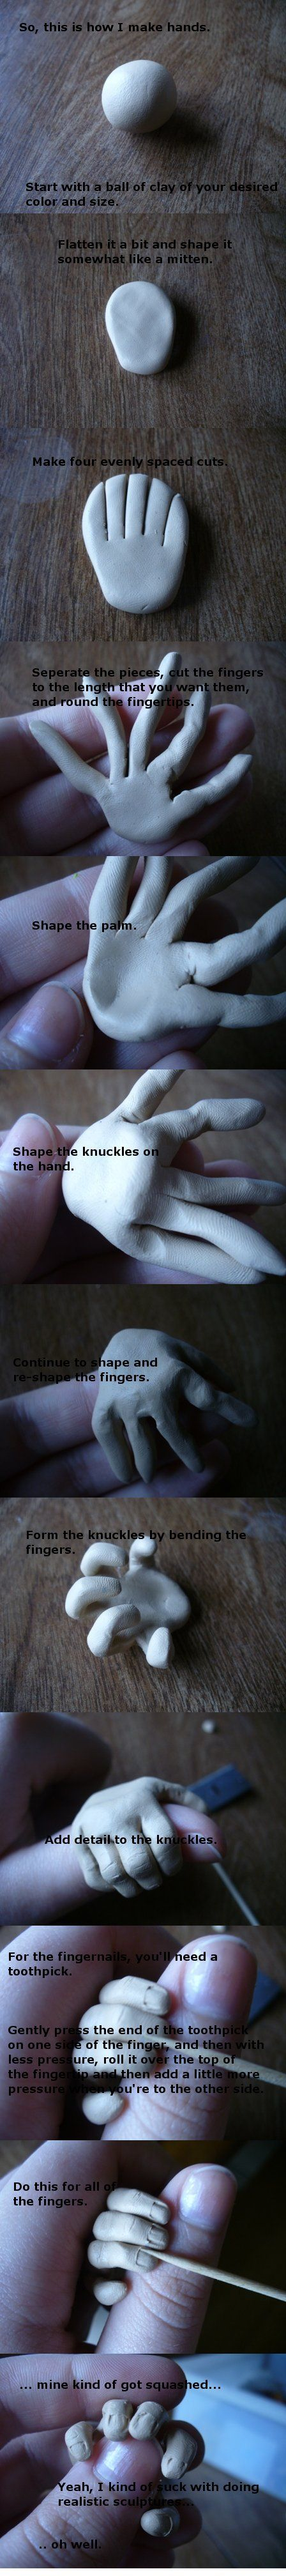 Hand Polymer Clay Tutorial by ~paperfaceparade on deviantART